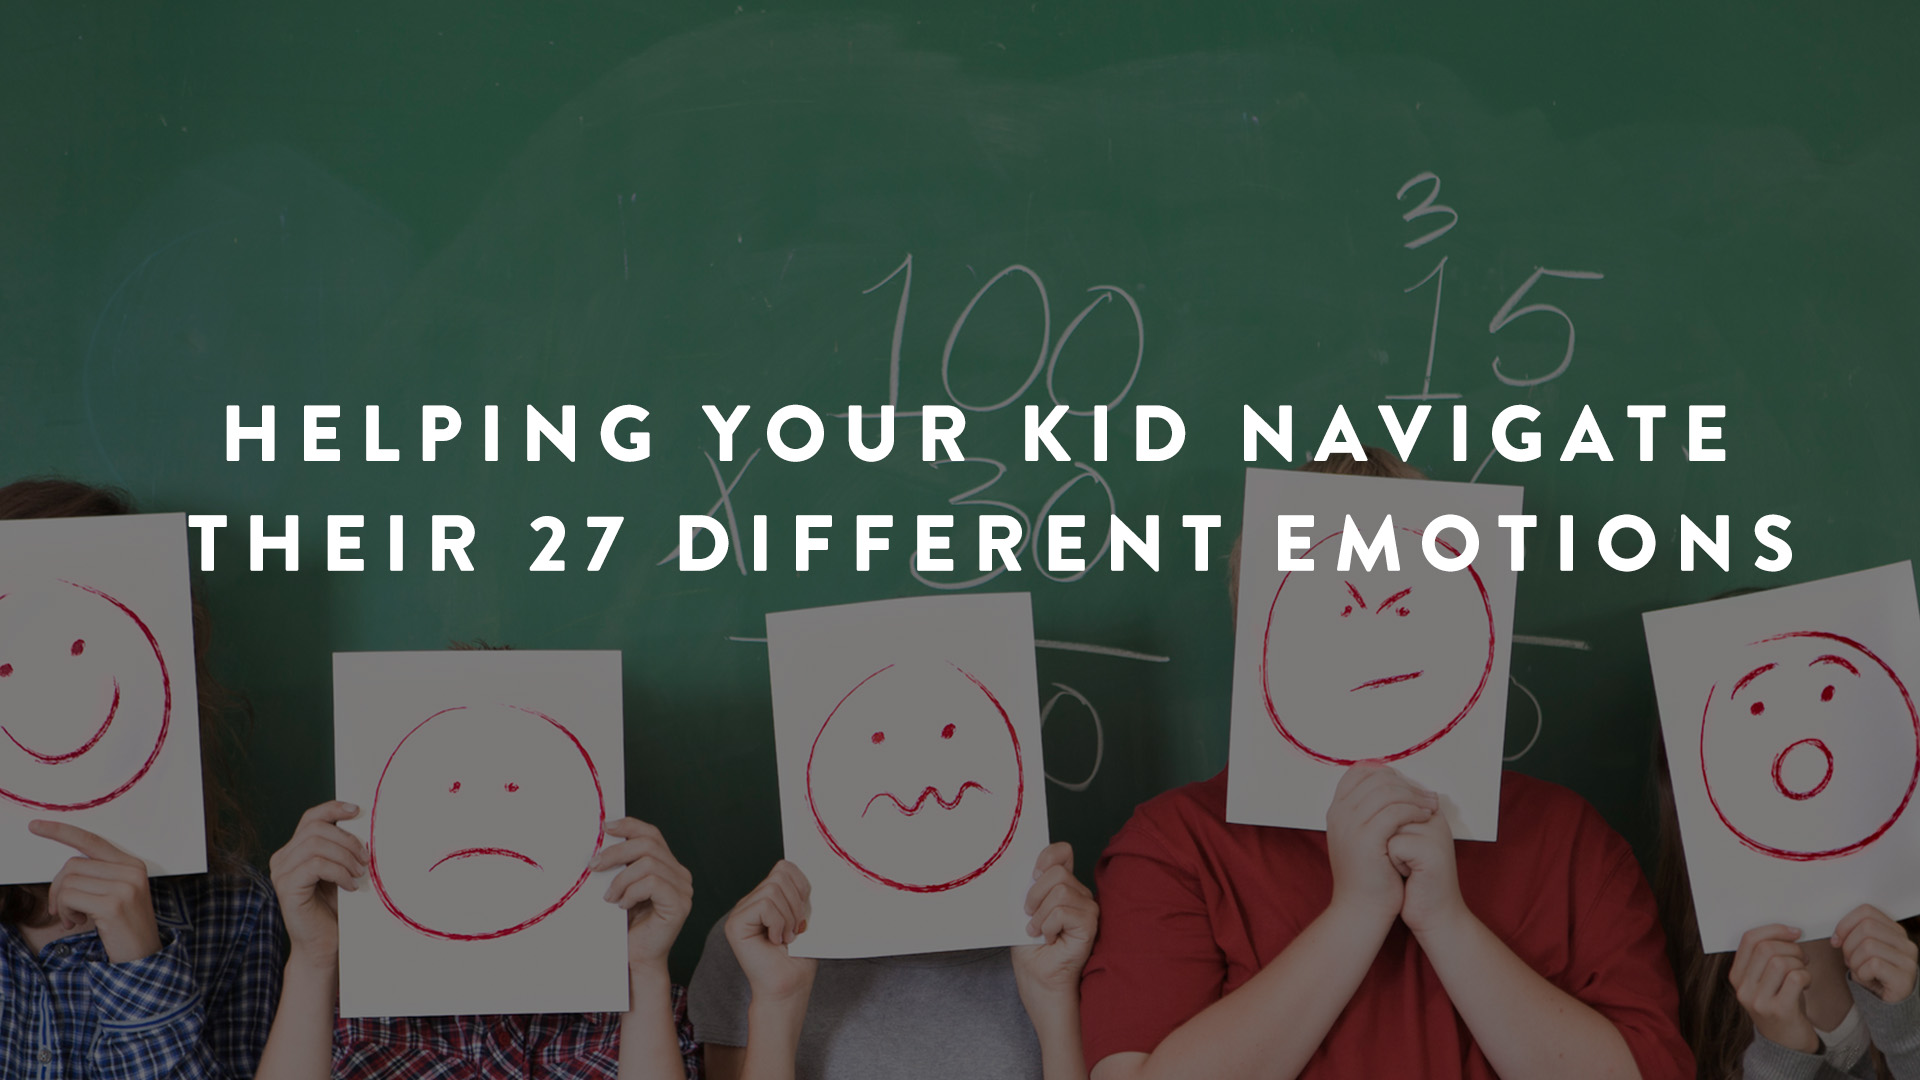 Helping your kid navigate their 27 different emotions